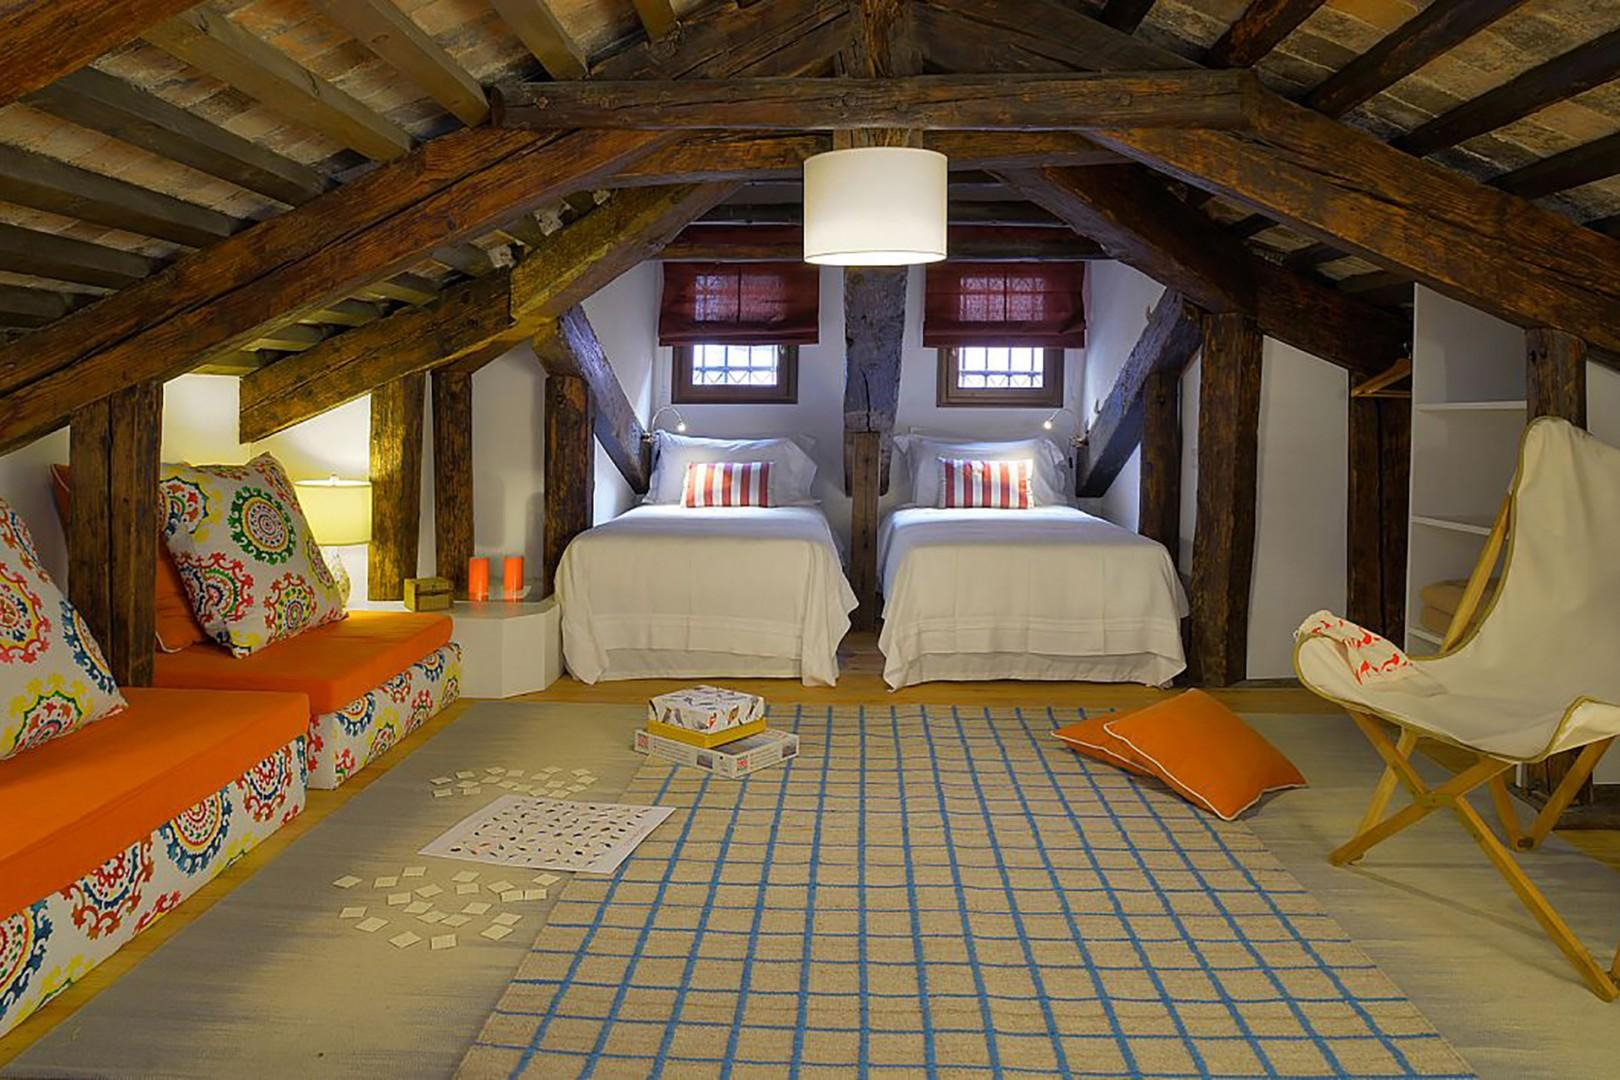 Attic bedroom. Bright highlights will appeal to children who can best navigate the low ceiling.